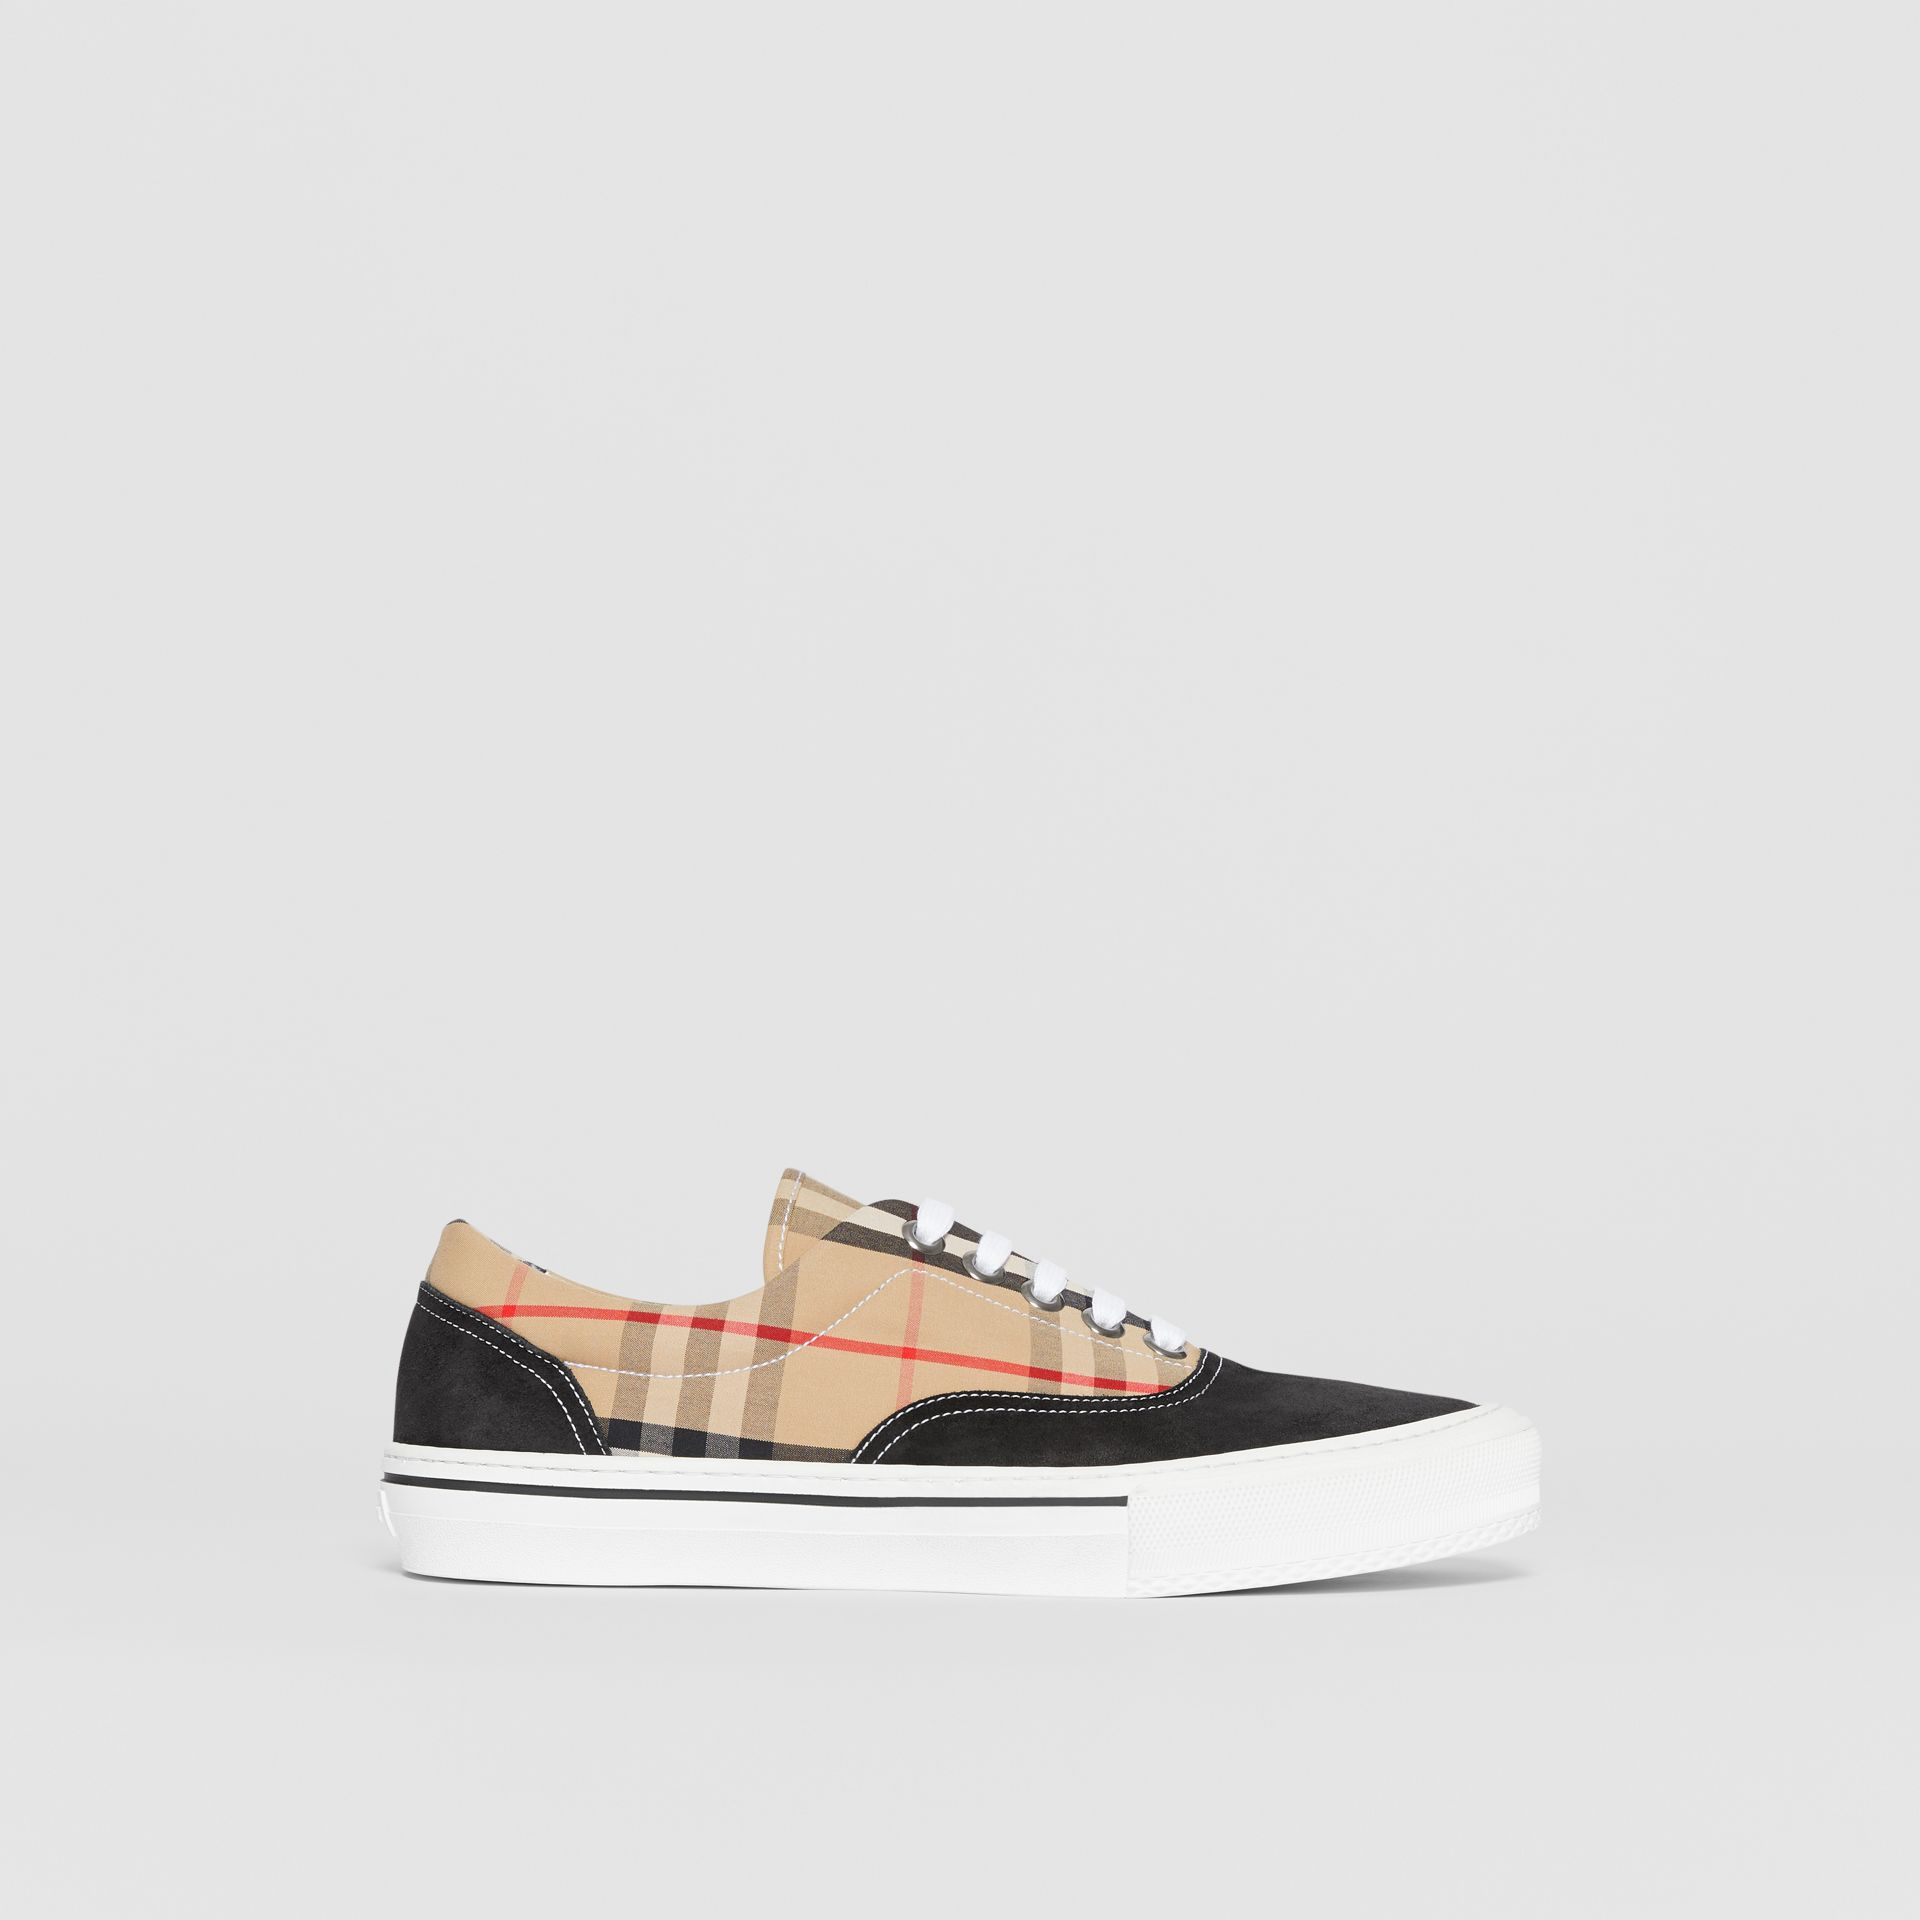 Vintage Check Cotton and Suede Sneakers in Black/archive Beige - Men | Burberry United States - gallery image 5